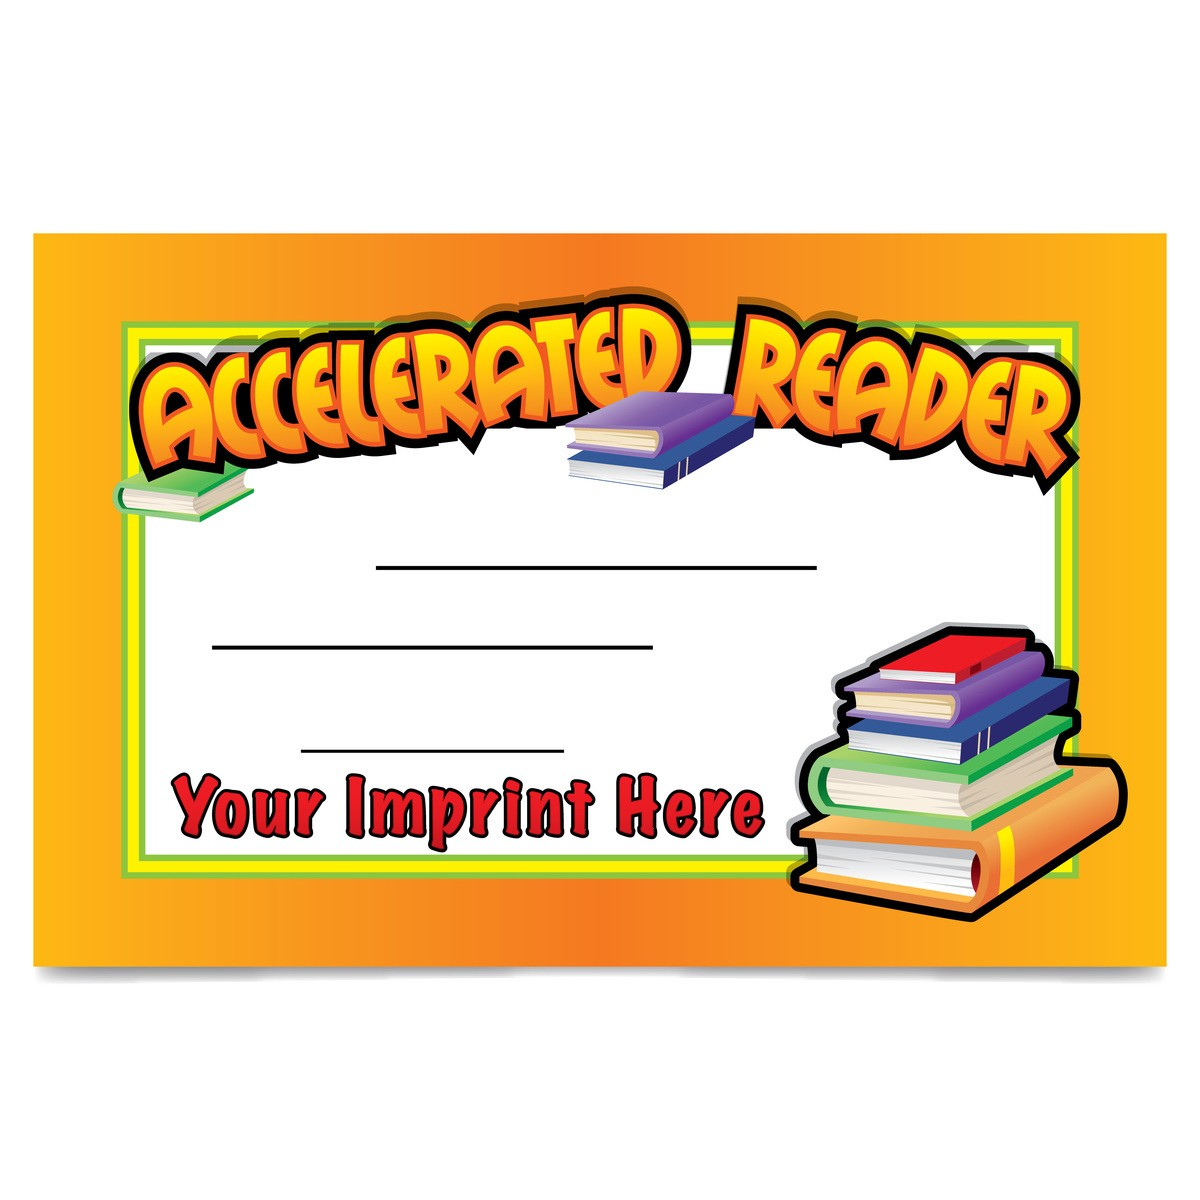 outstanding reader printable certificate | Certificates